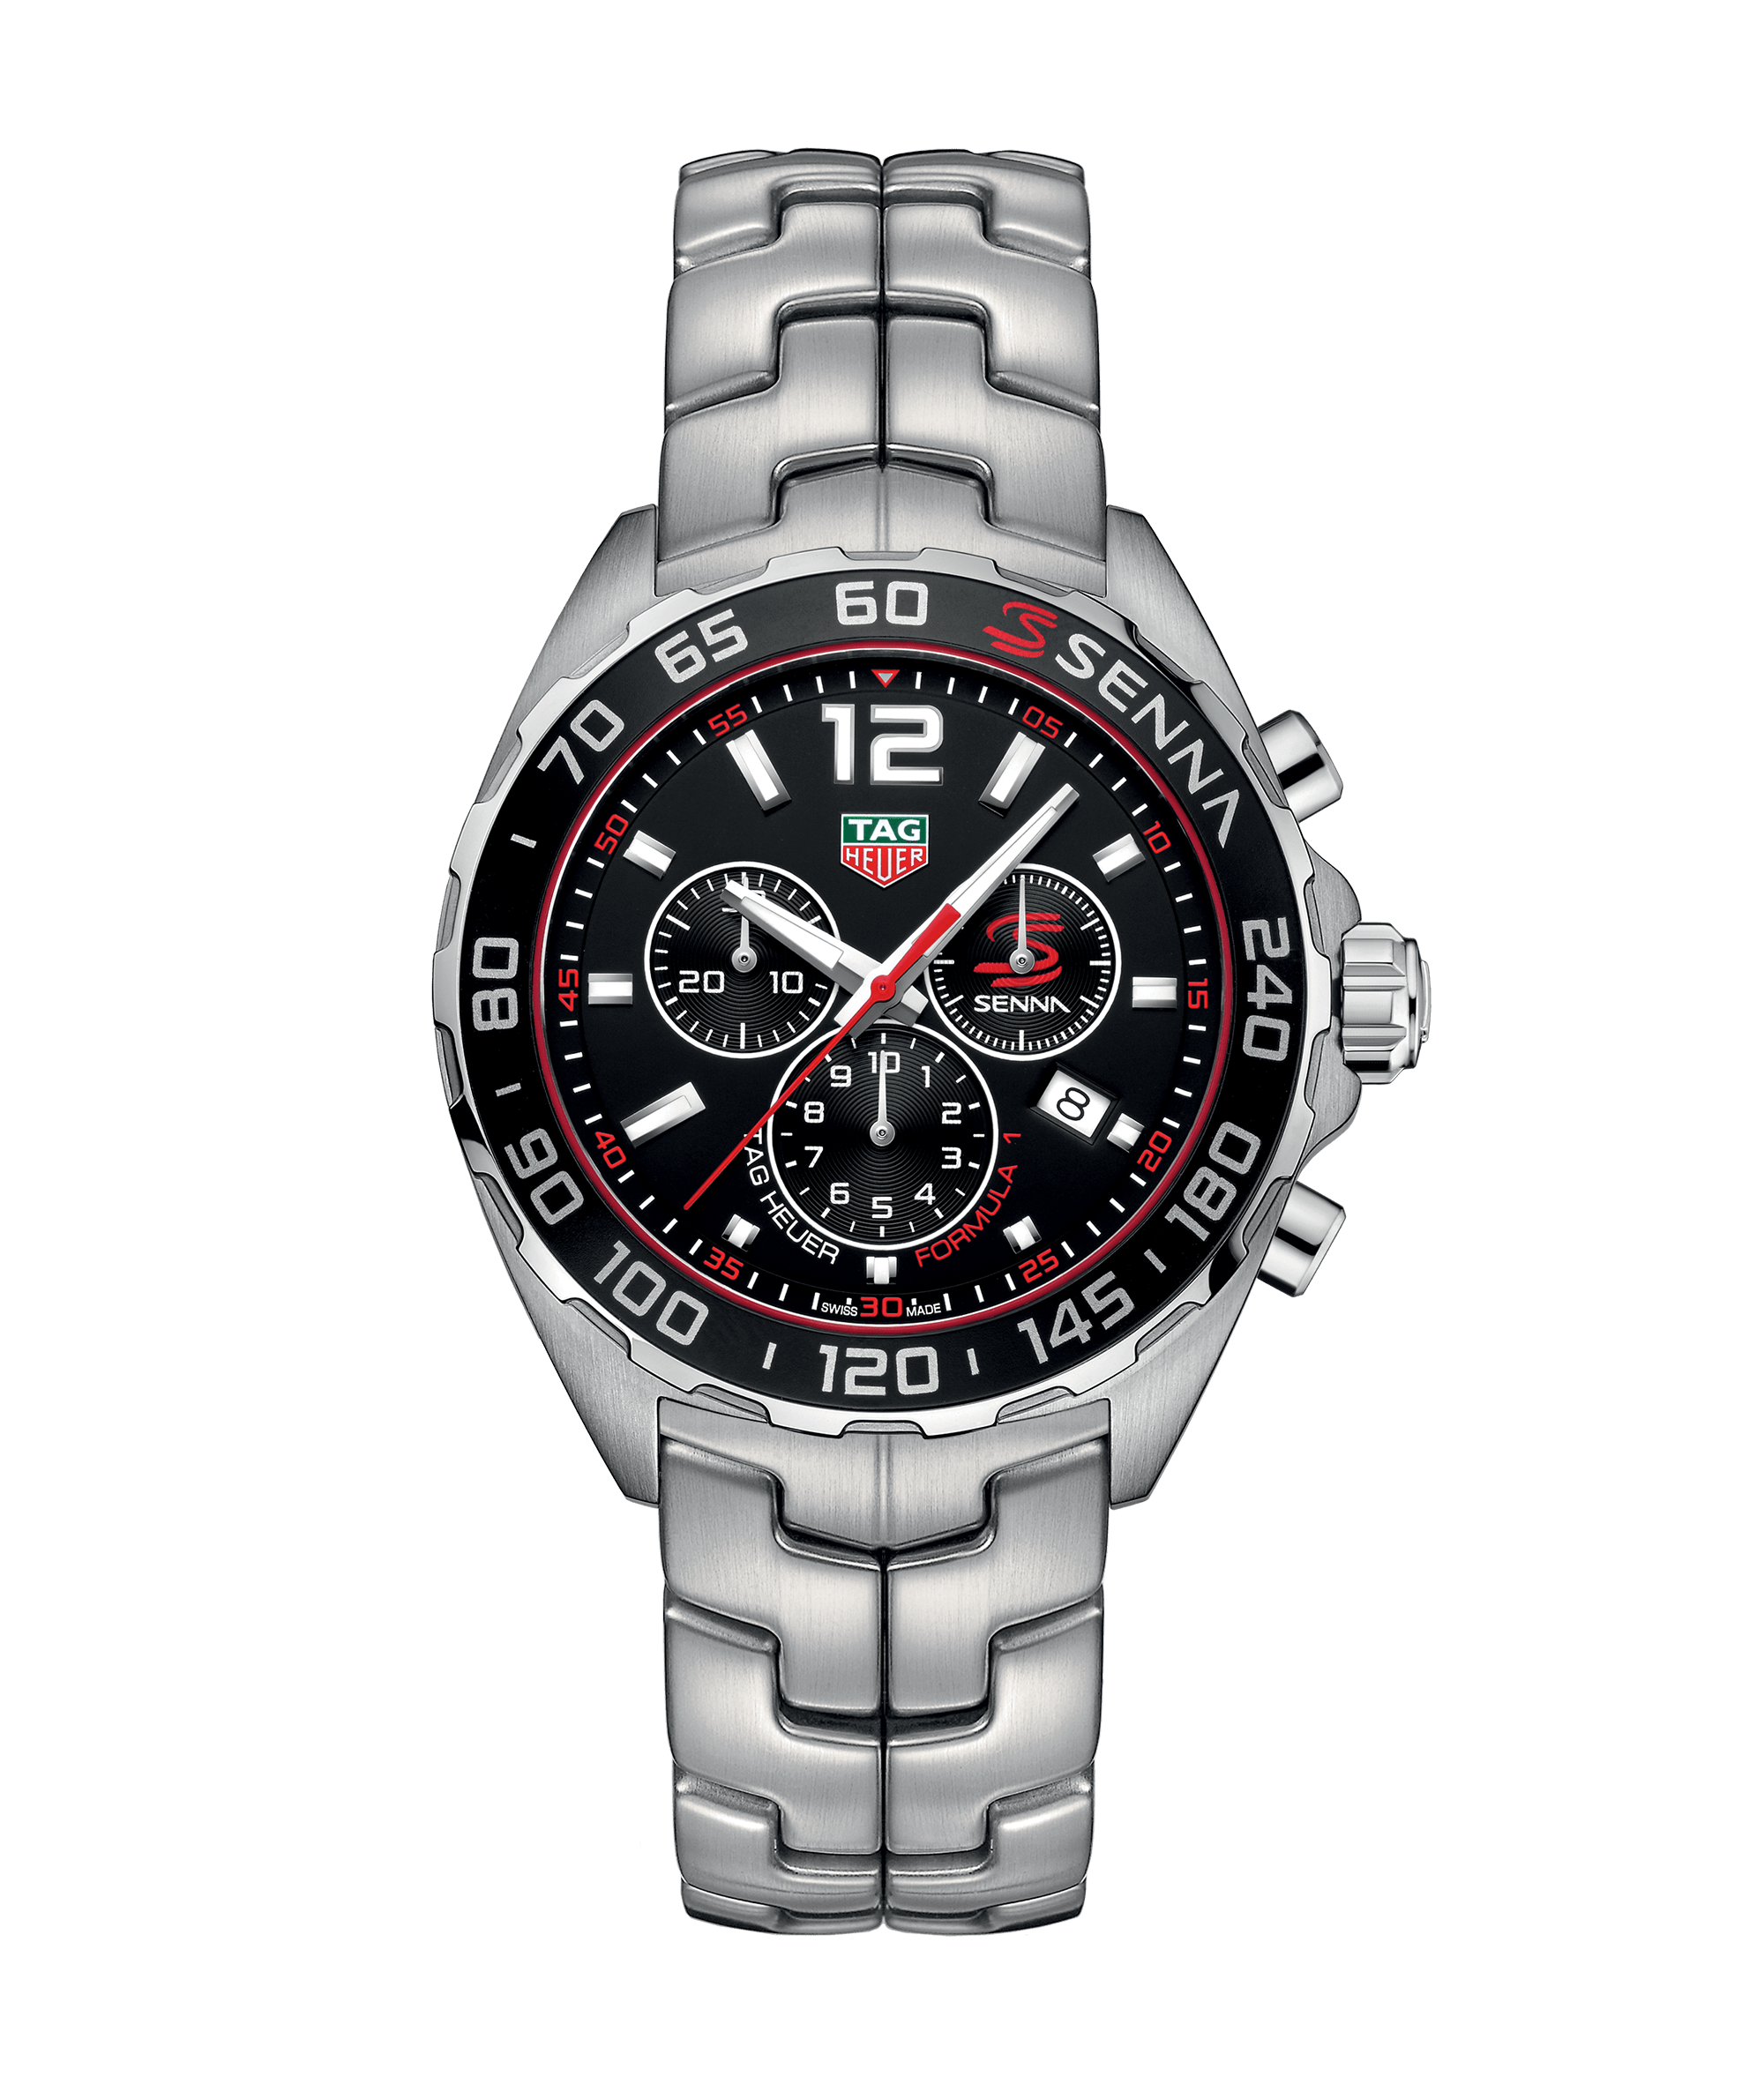 champion lotfinder rebellion rebellionpredator details power watches sebastien s bastien buemi gnv reserve lot regulator edition predator